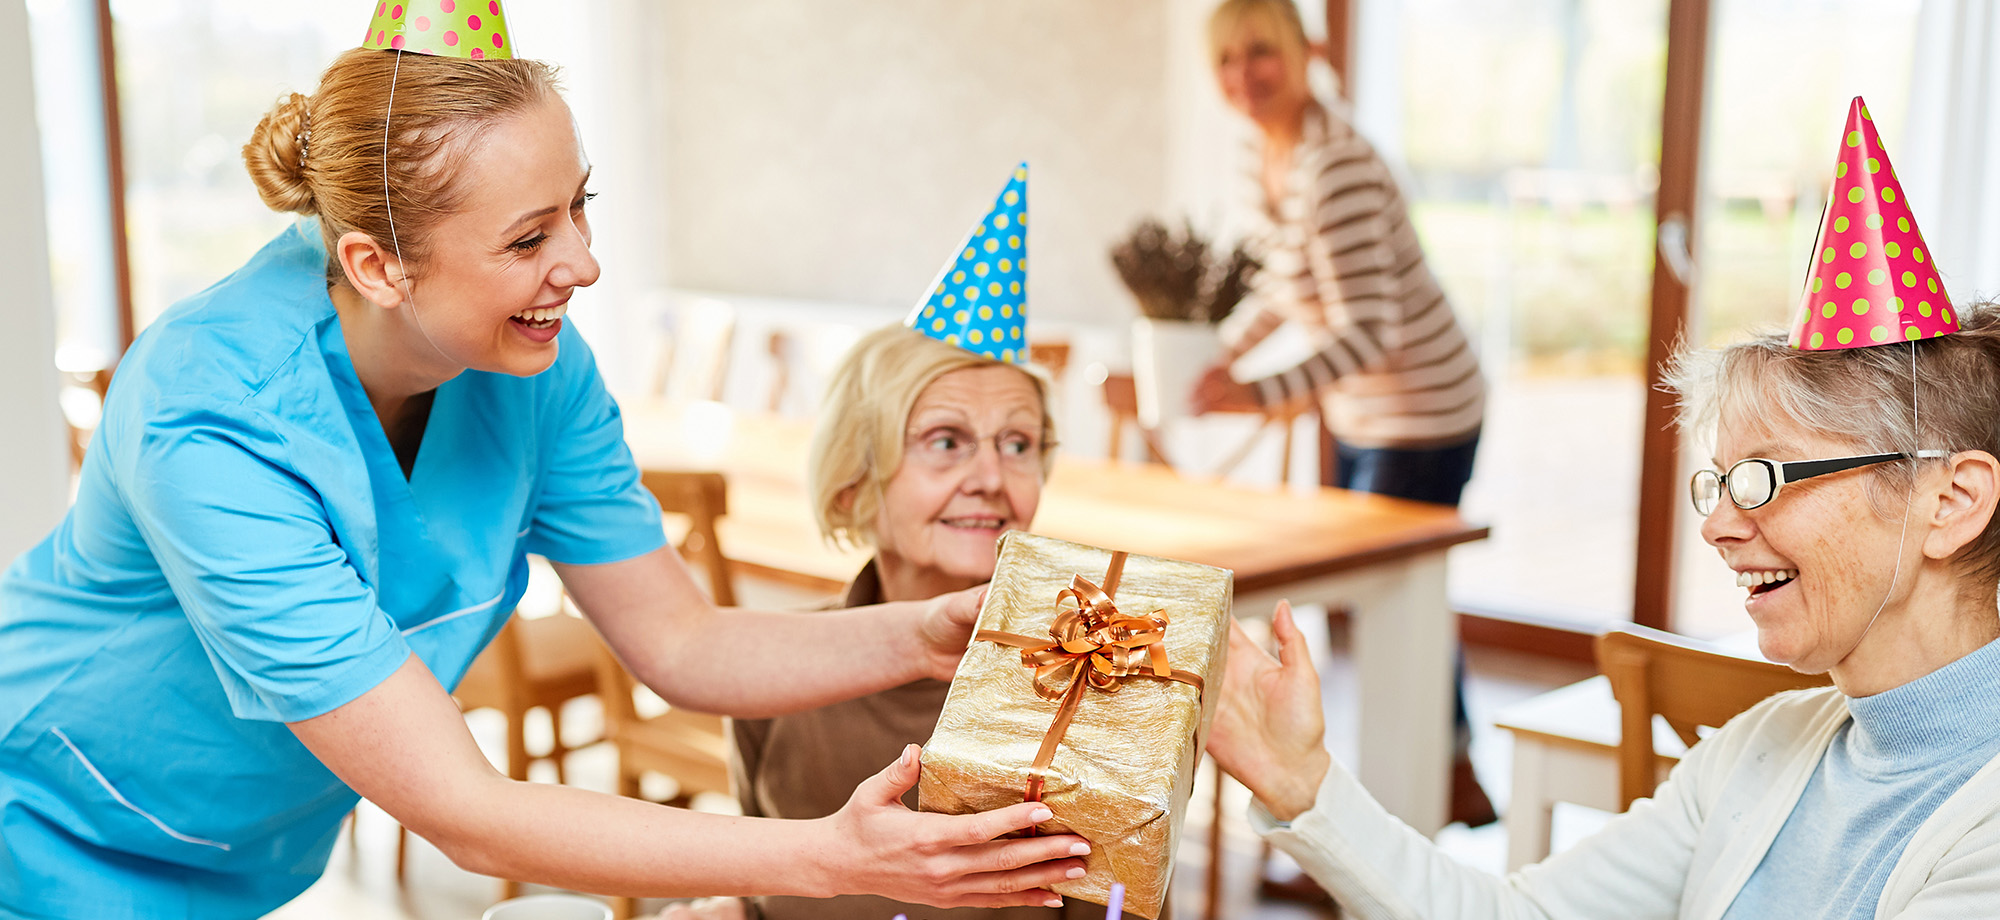 A senior is handed a present by employee at a party